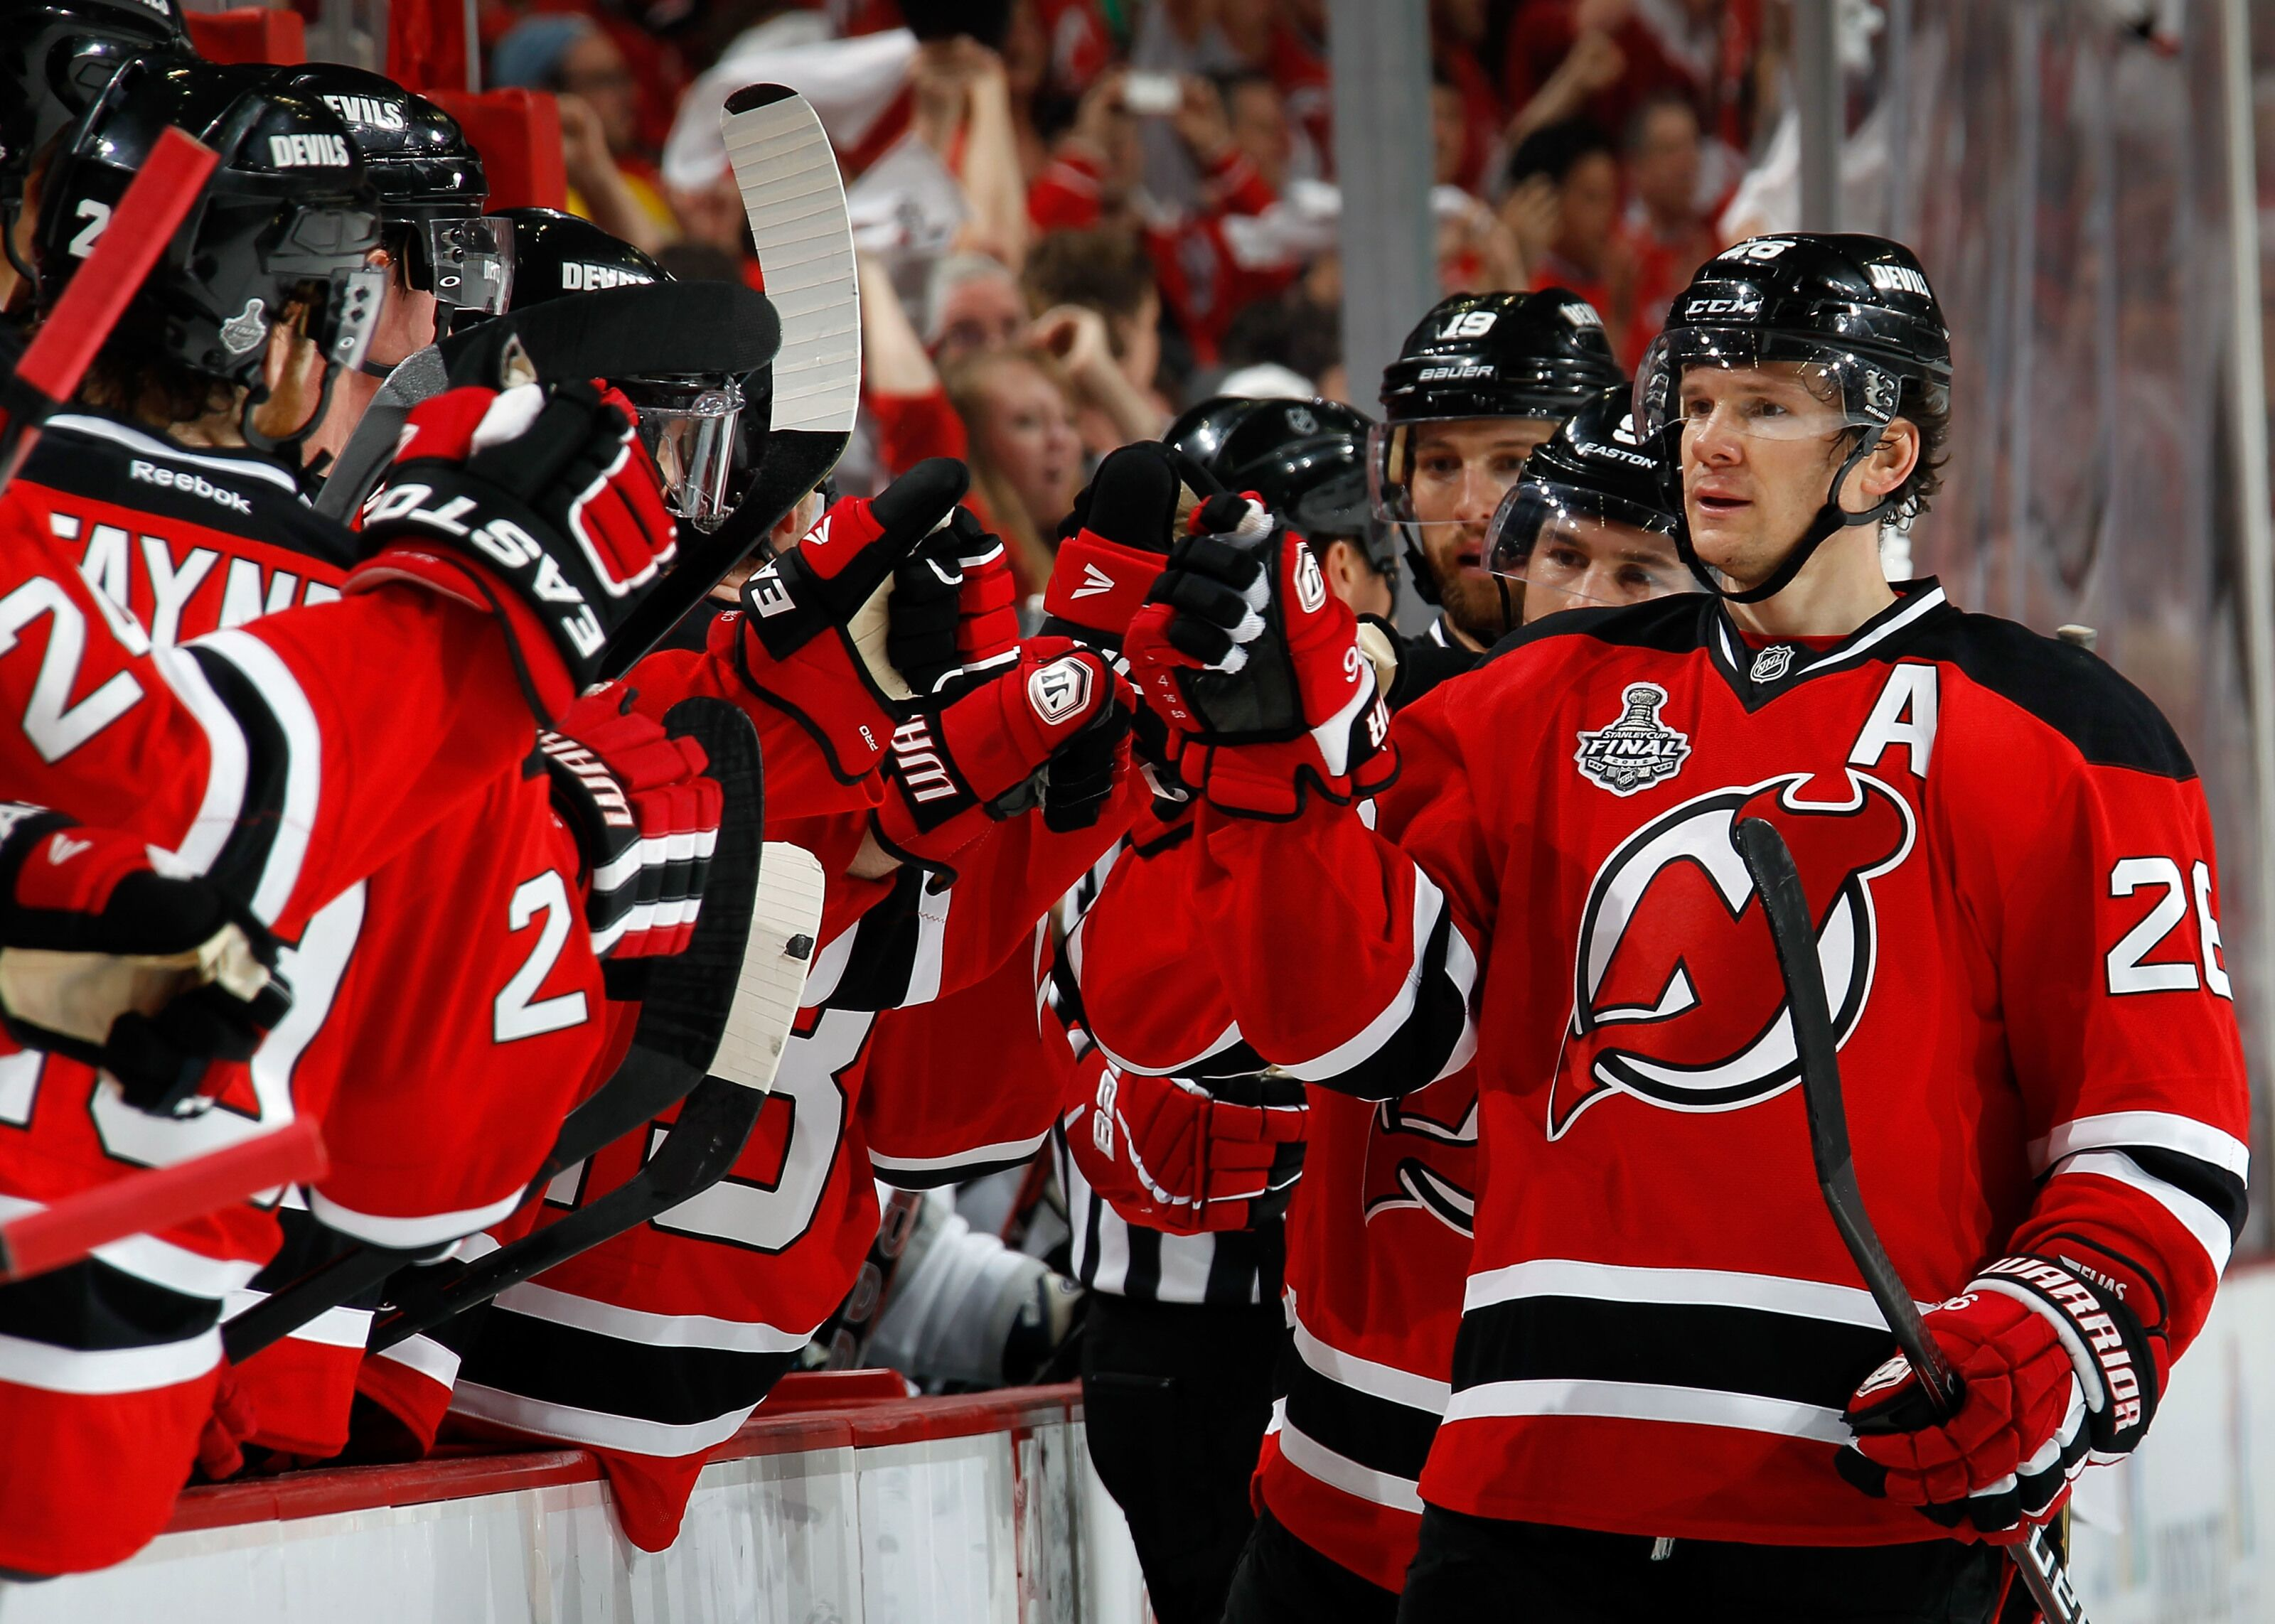 What If New Jersey Devils Had Scored Overtime Goals in 2012 Finals?